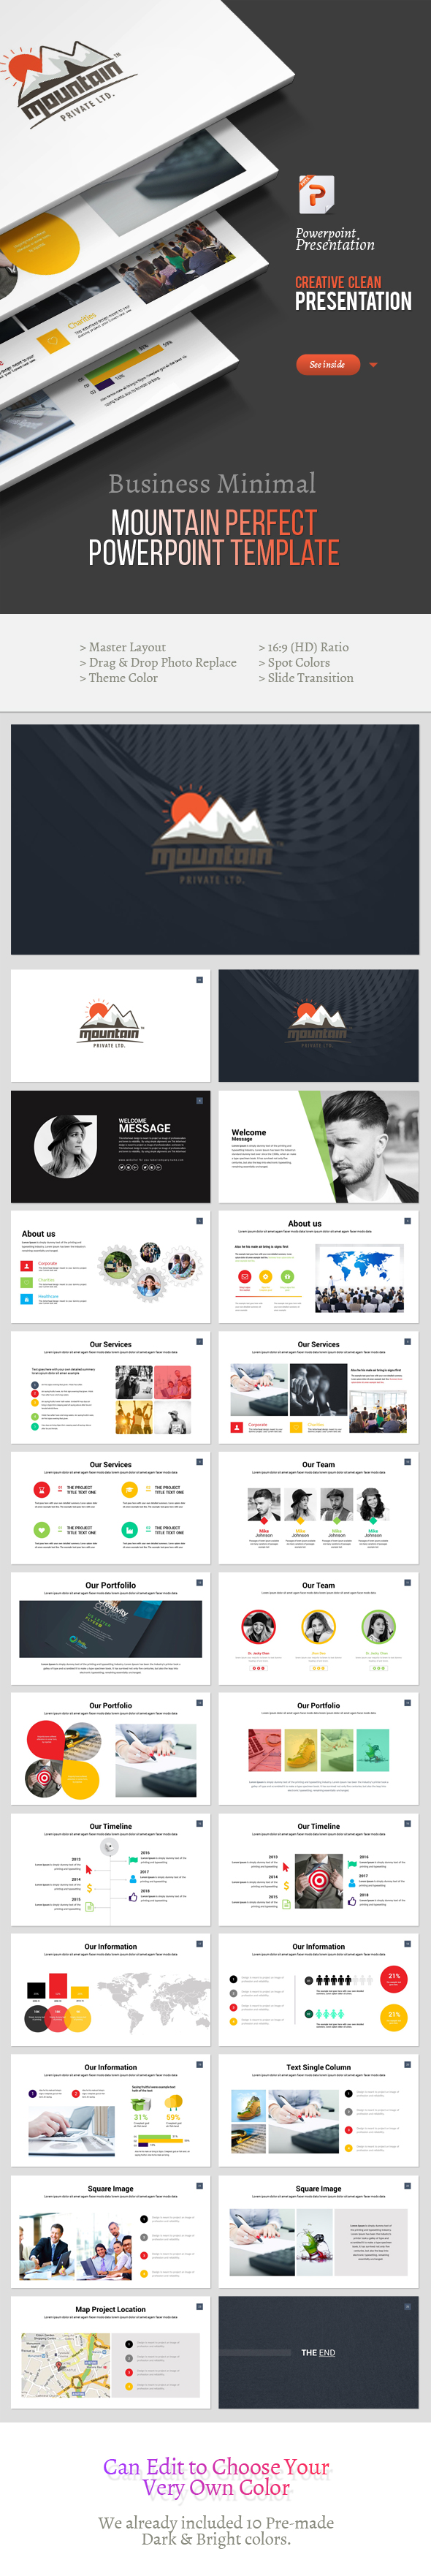 Mountain - Perfect Powerpoint Template - Business PowerPoint Templates